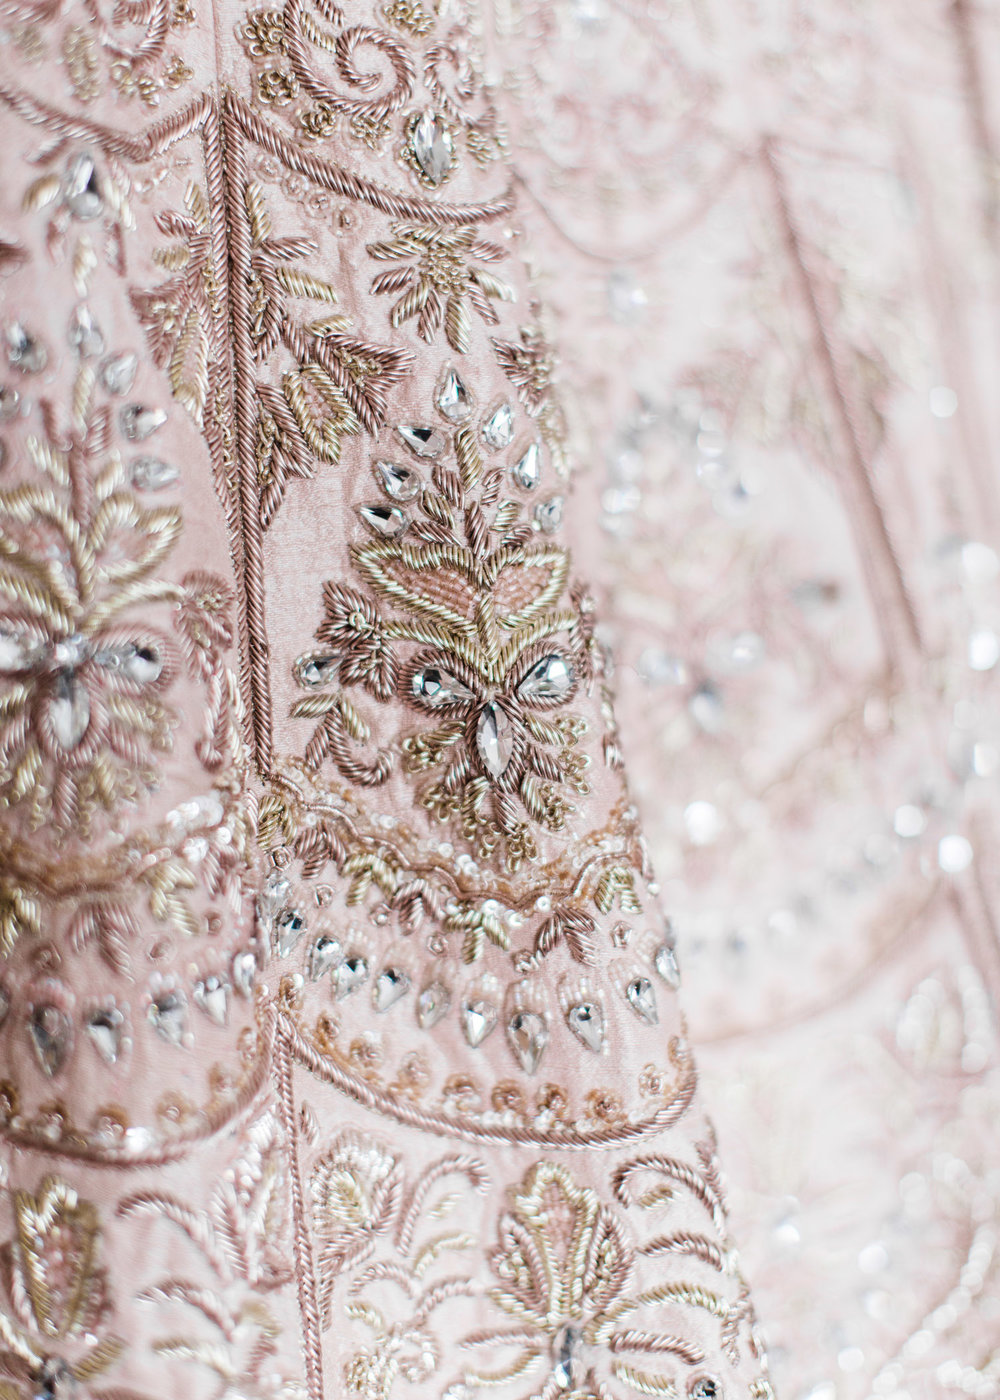 Alexandra Knight Photography Seattle Indian Wedding Photographer Lehenga Detail Blush and Gold Sari Dress Close up.jpg